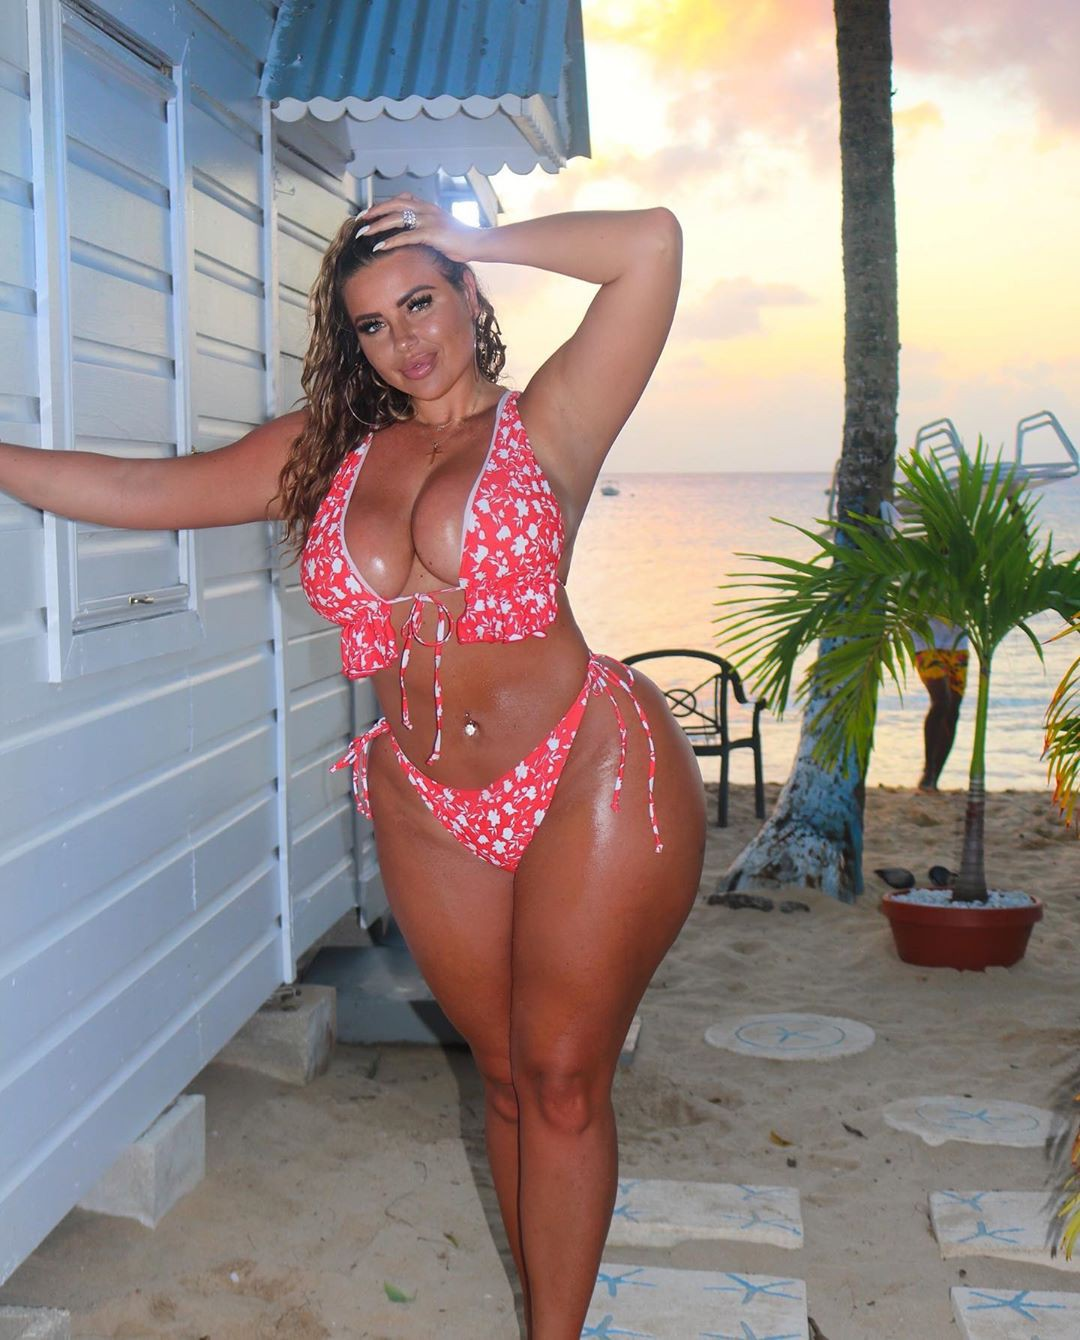 pink matching style with lingerie, bikini, hot girls thighs